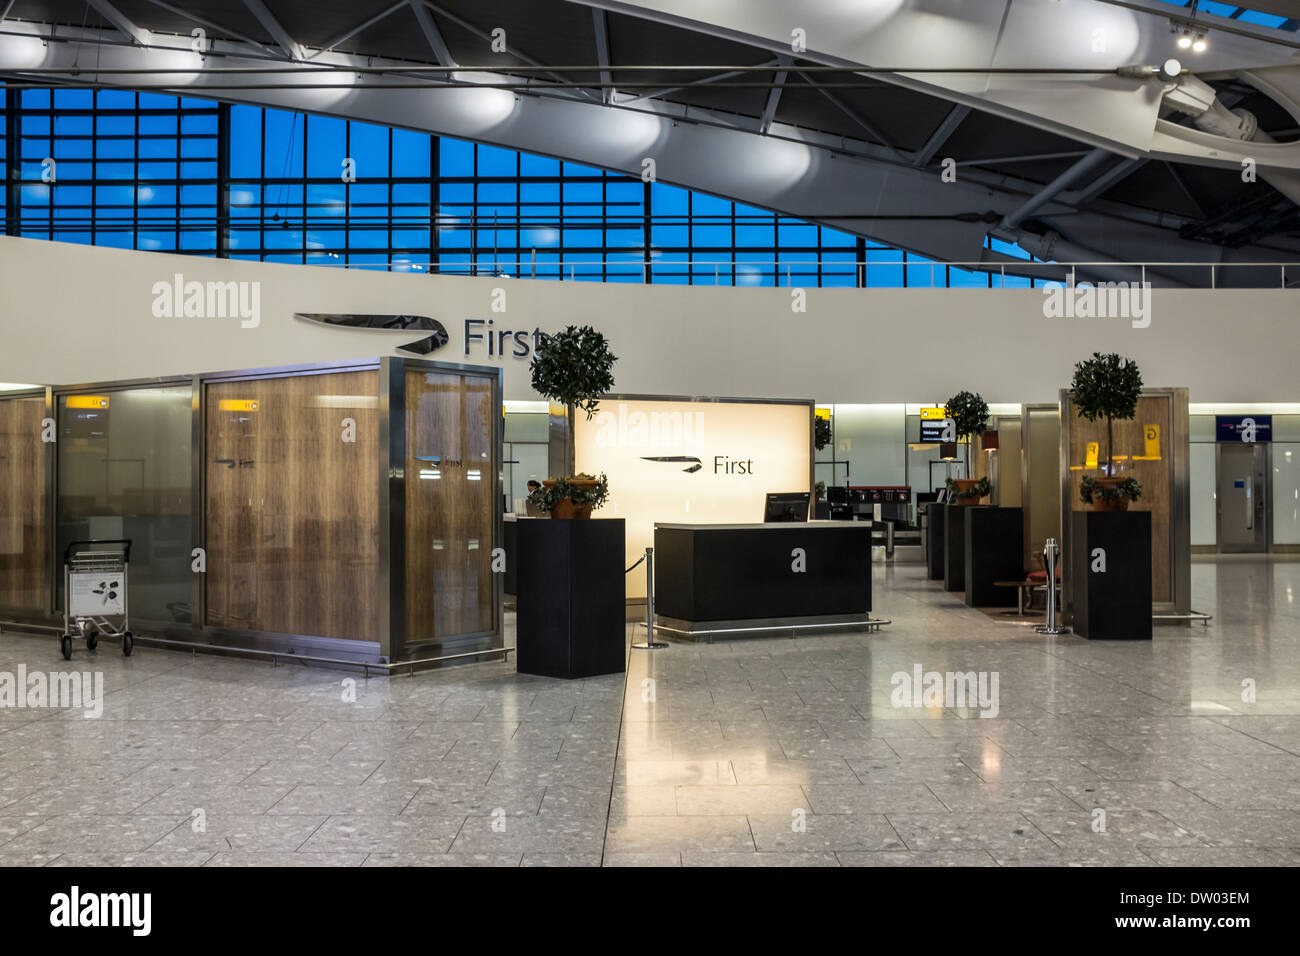 Terminal 5 T5 elegant check-in area for First Class passengers at Heathrow Airport, London, UK - Stock Image